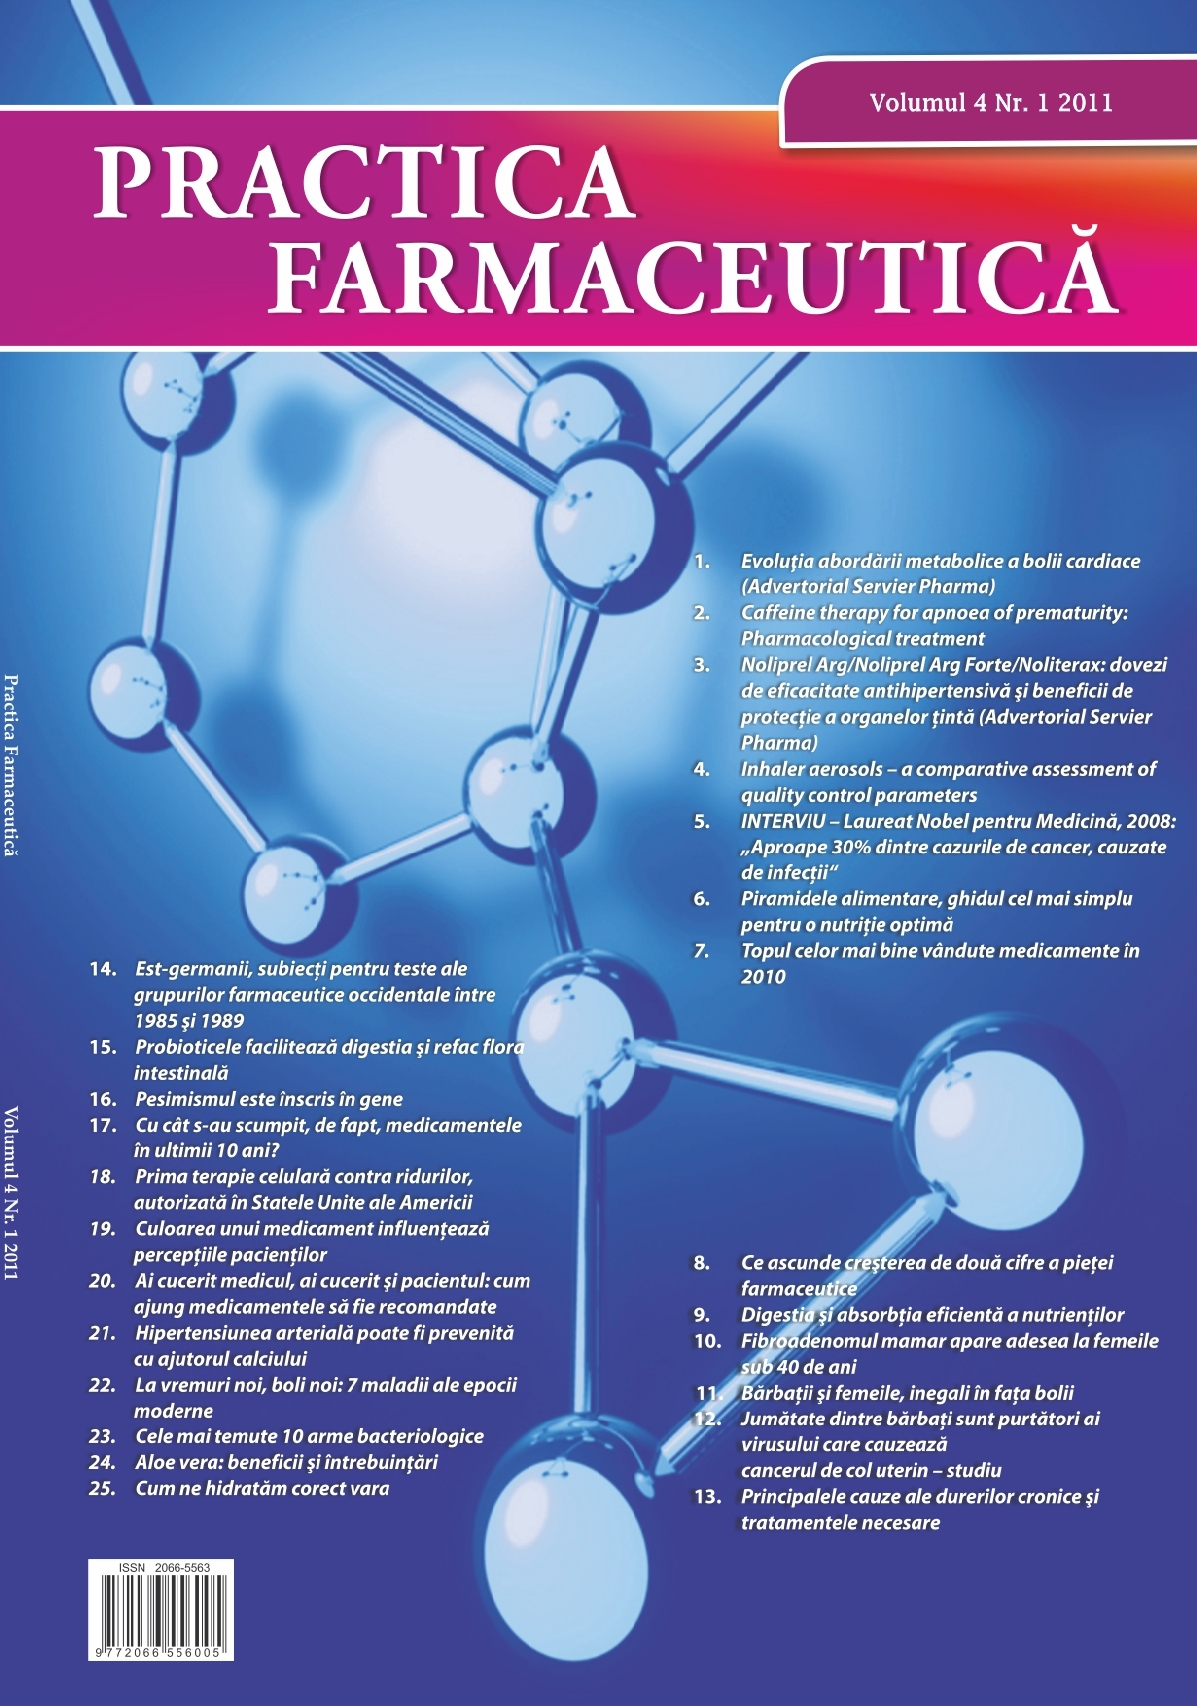 Revista Practica Farmaceutica, Vol. 4, Nr. 1 (9), 2011